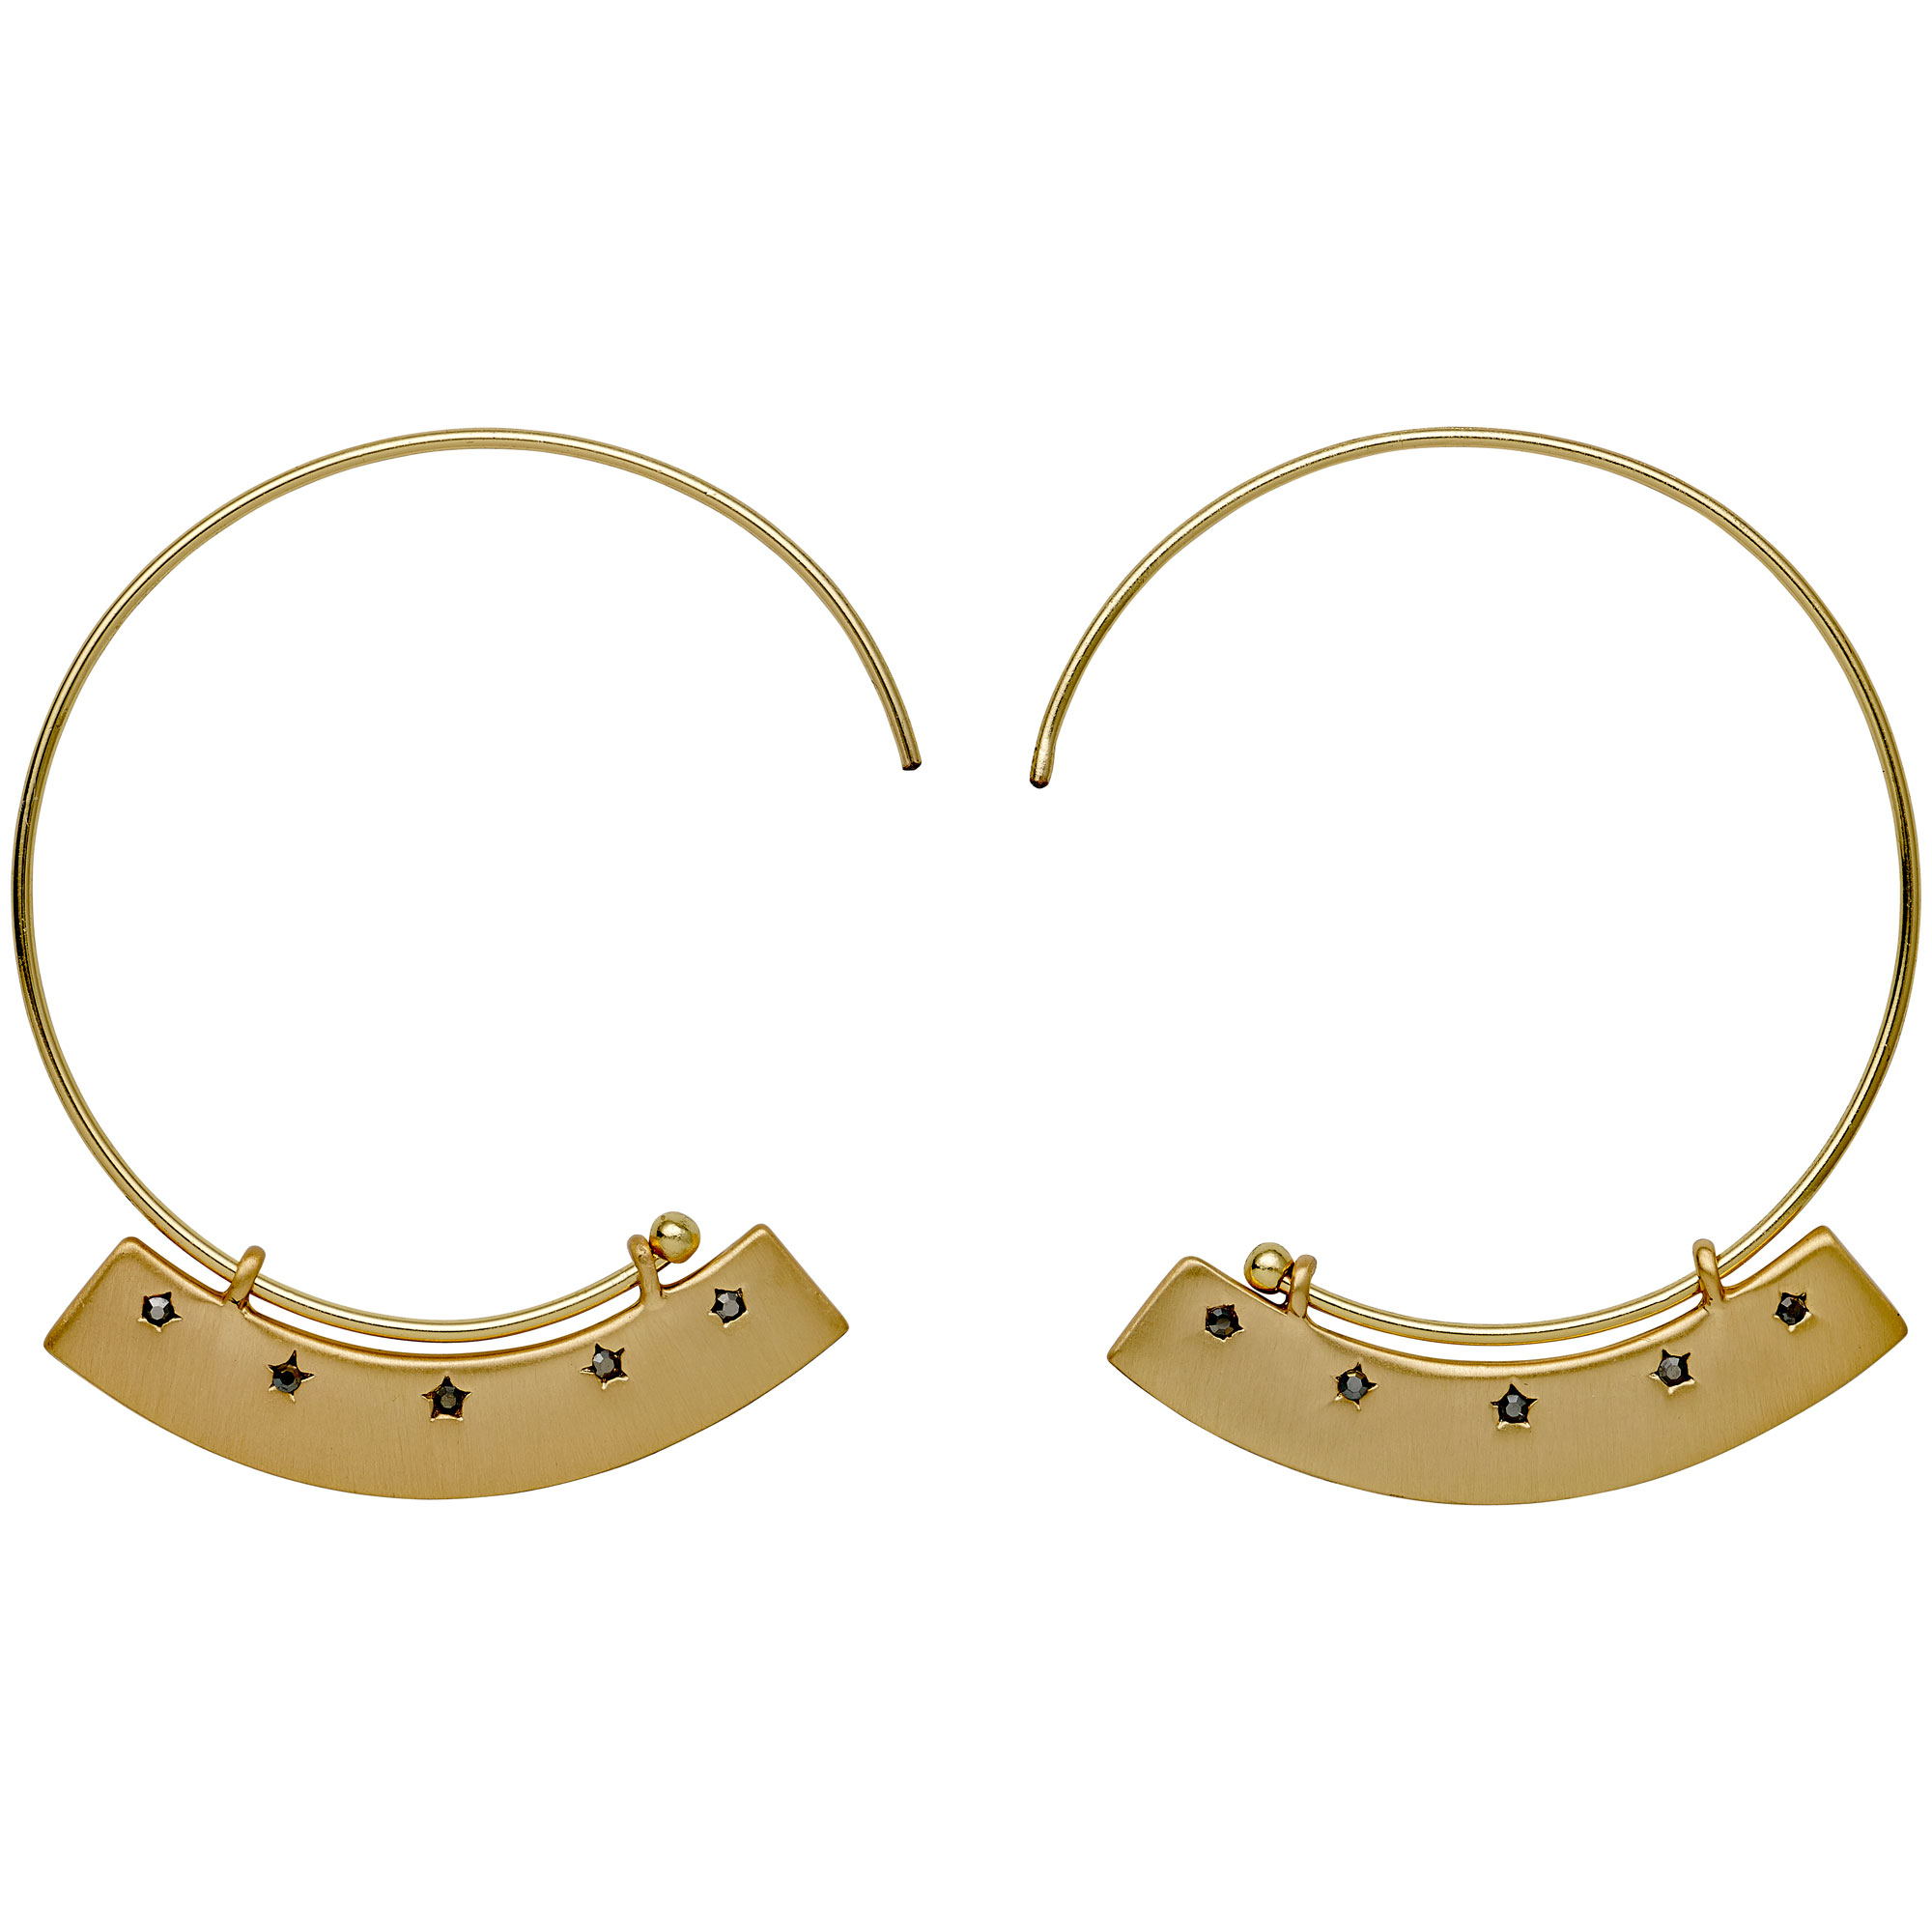 Pilgrim earrings (hoops) with gold plated brass and precious.